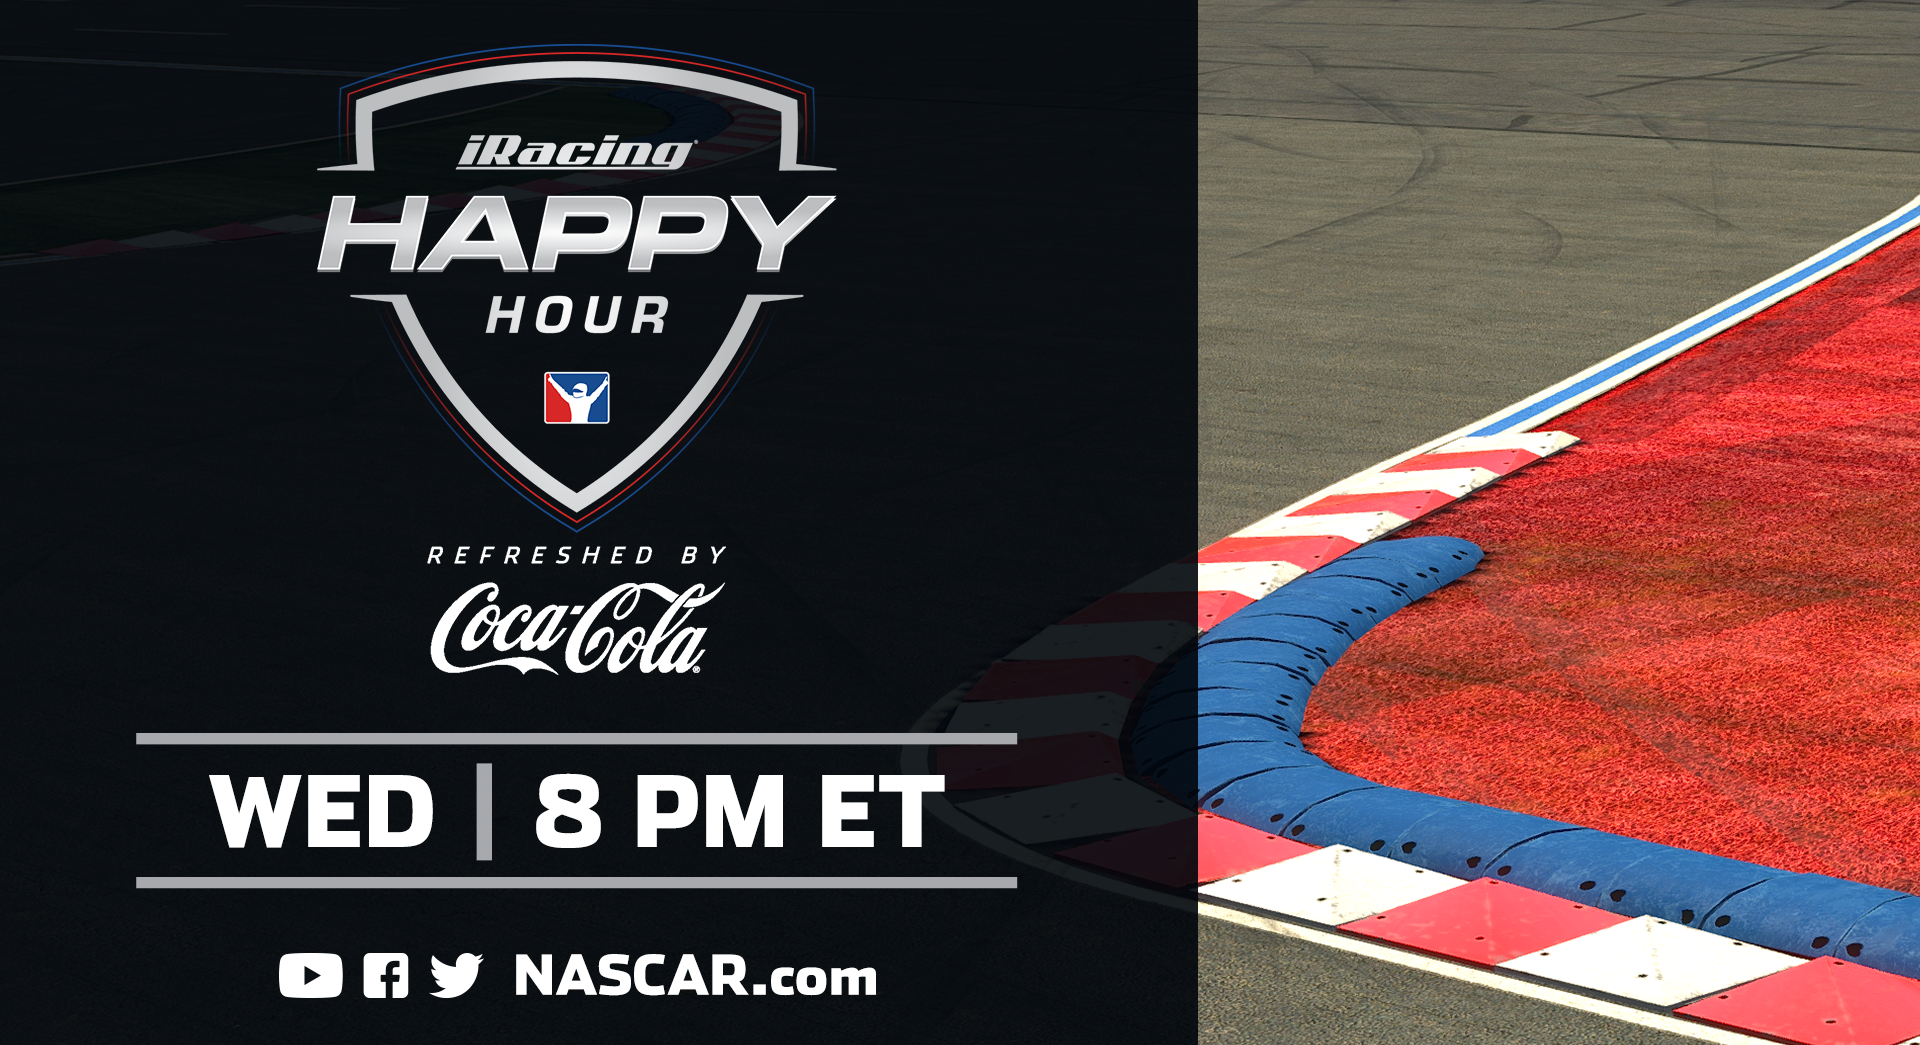 Iracing Happy Hour Refreshed By Coke